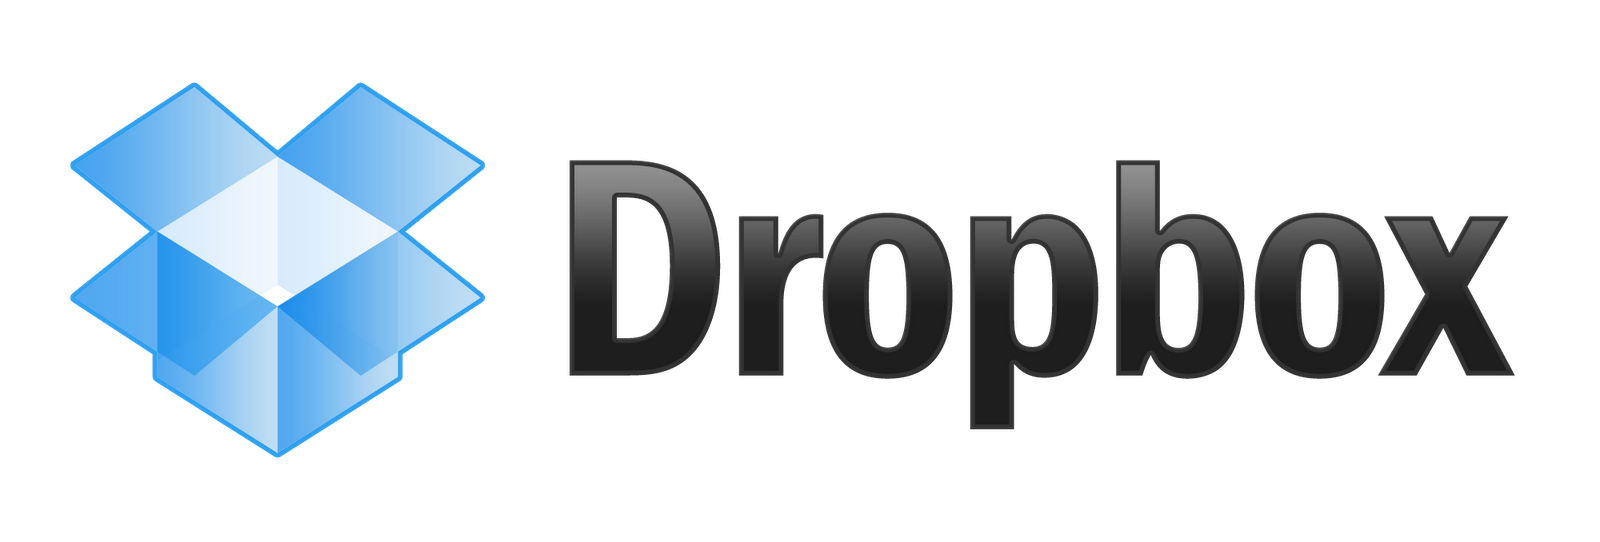 Best free online storage sites to backup your files - Dropbox